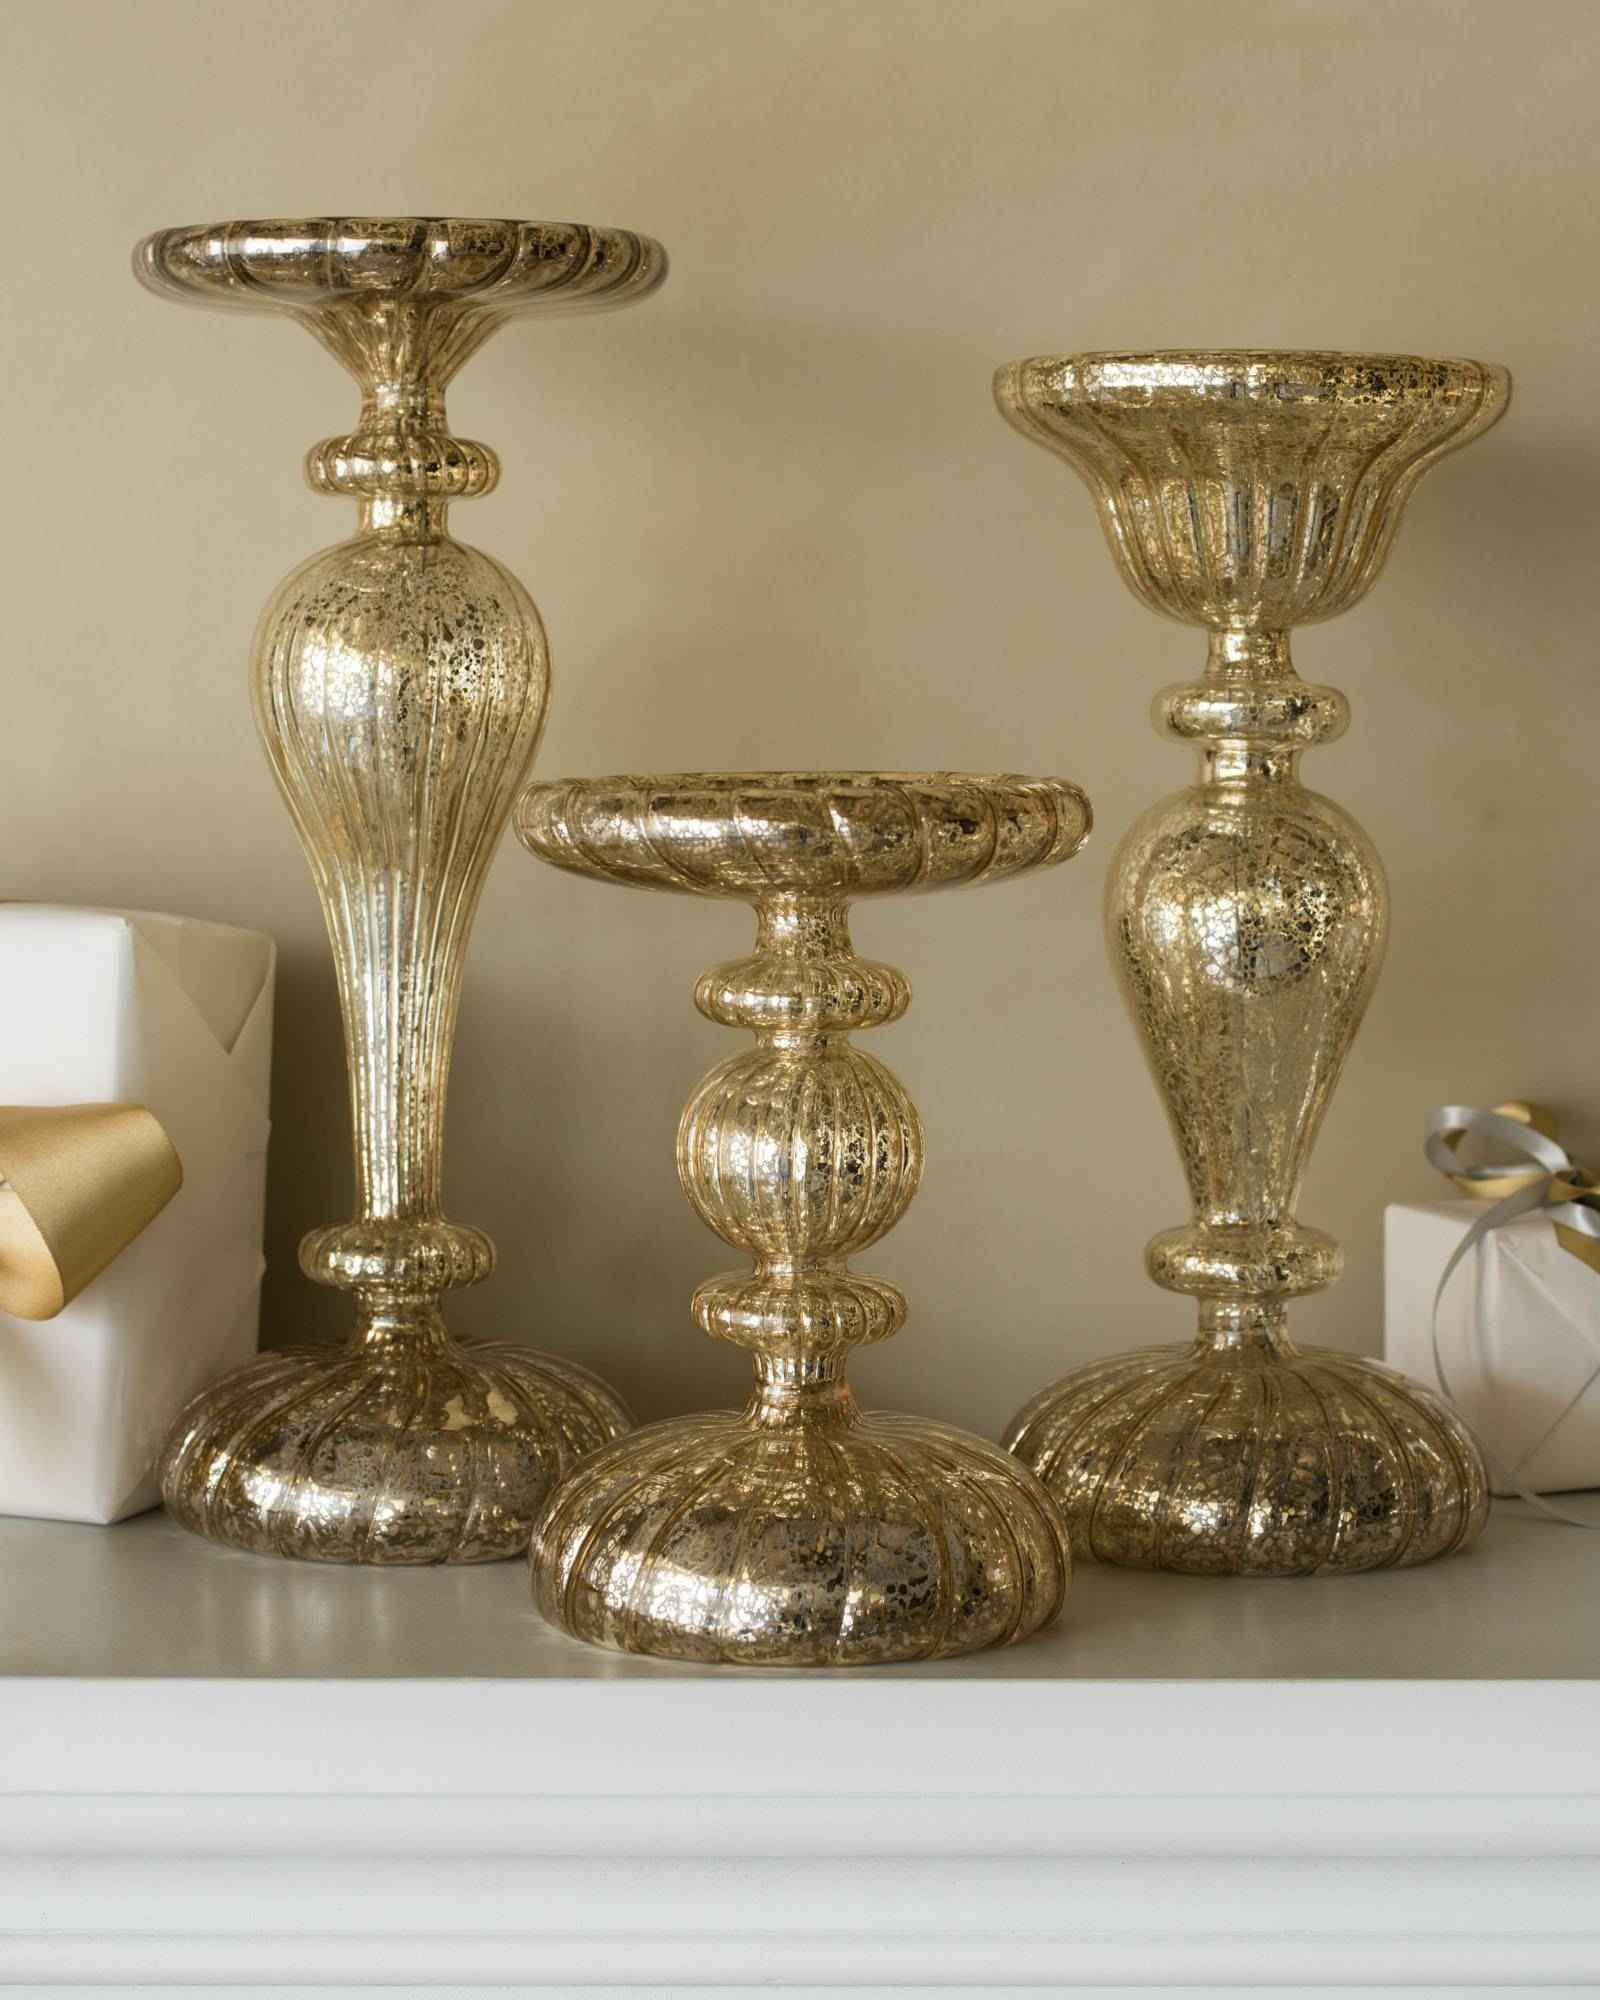 cheap gold vases wholesale of 34 gold mercury glass vases the weekly world inside candle holder wholesale glass votive candle holders inspirational